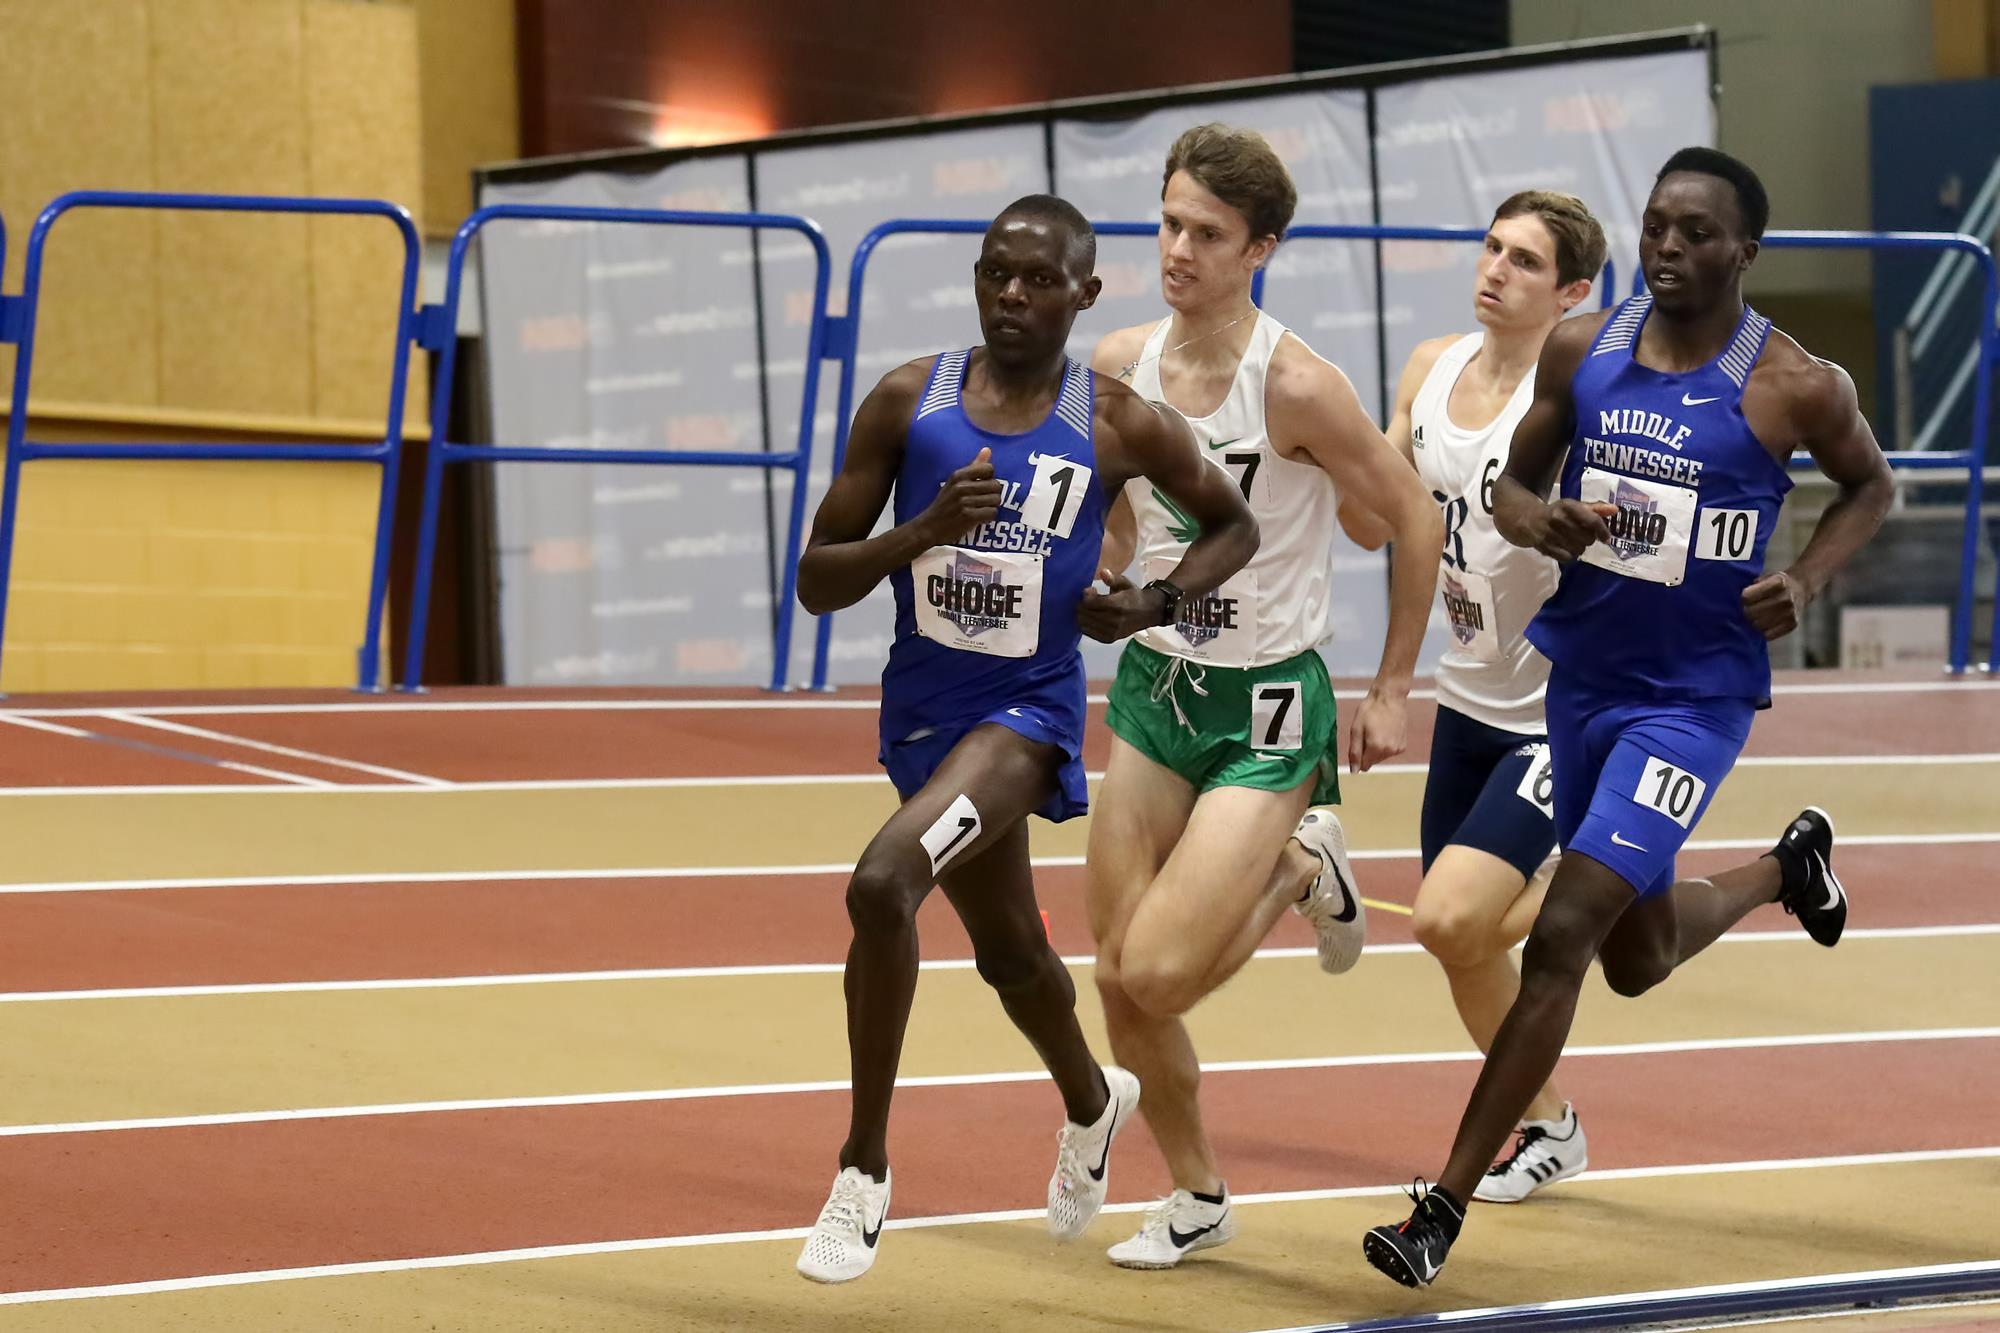 Track Field Cross Country Middle Tennessee State University Athletics